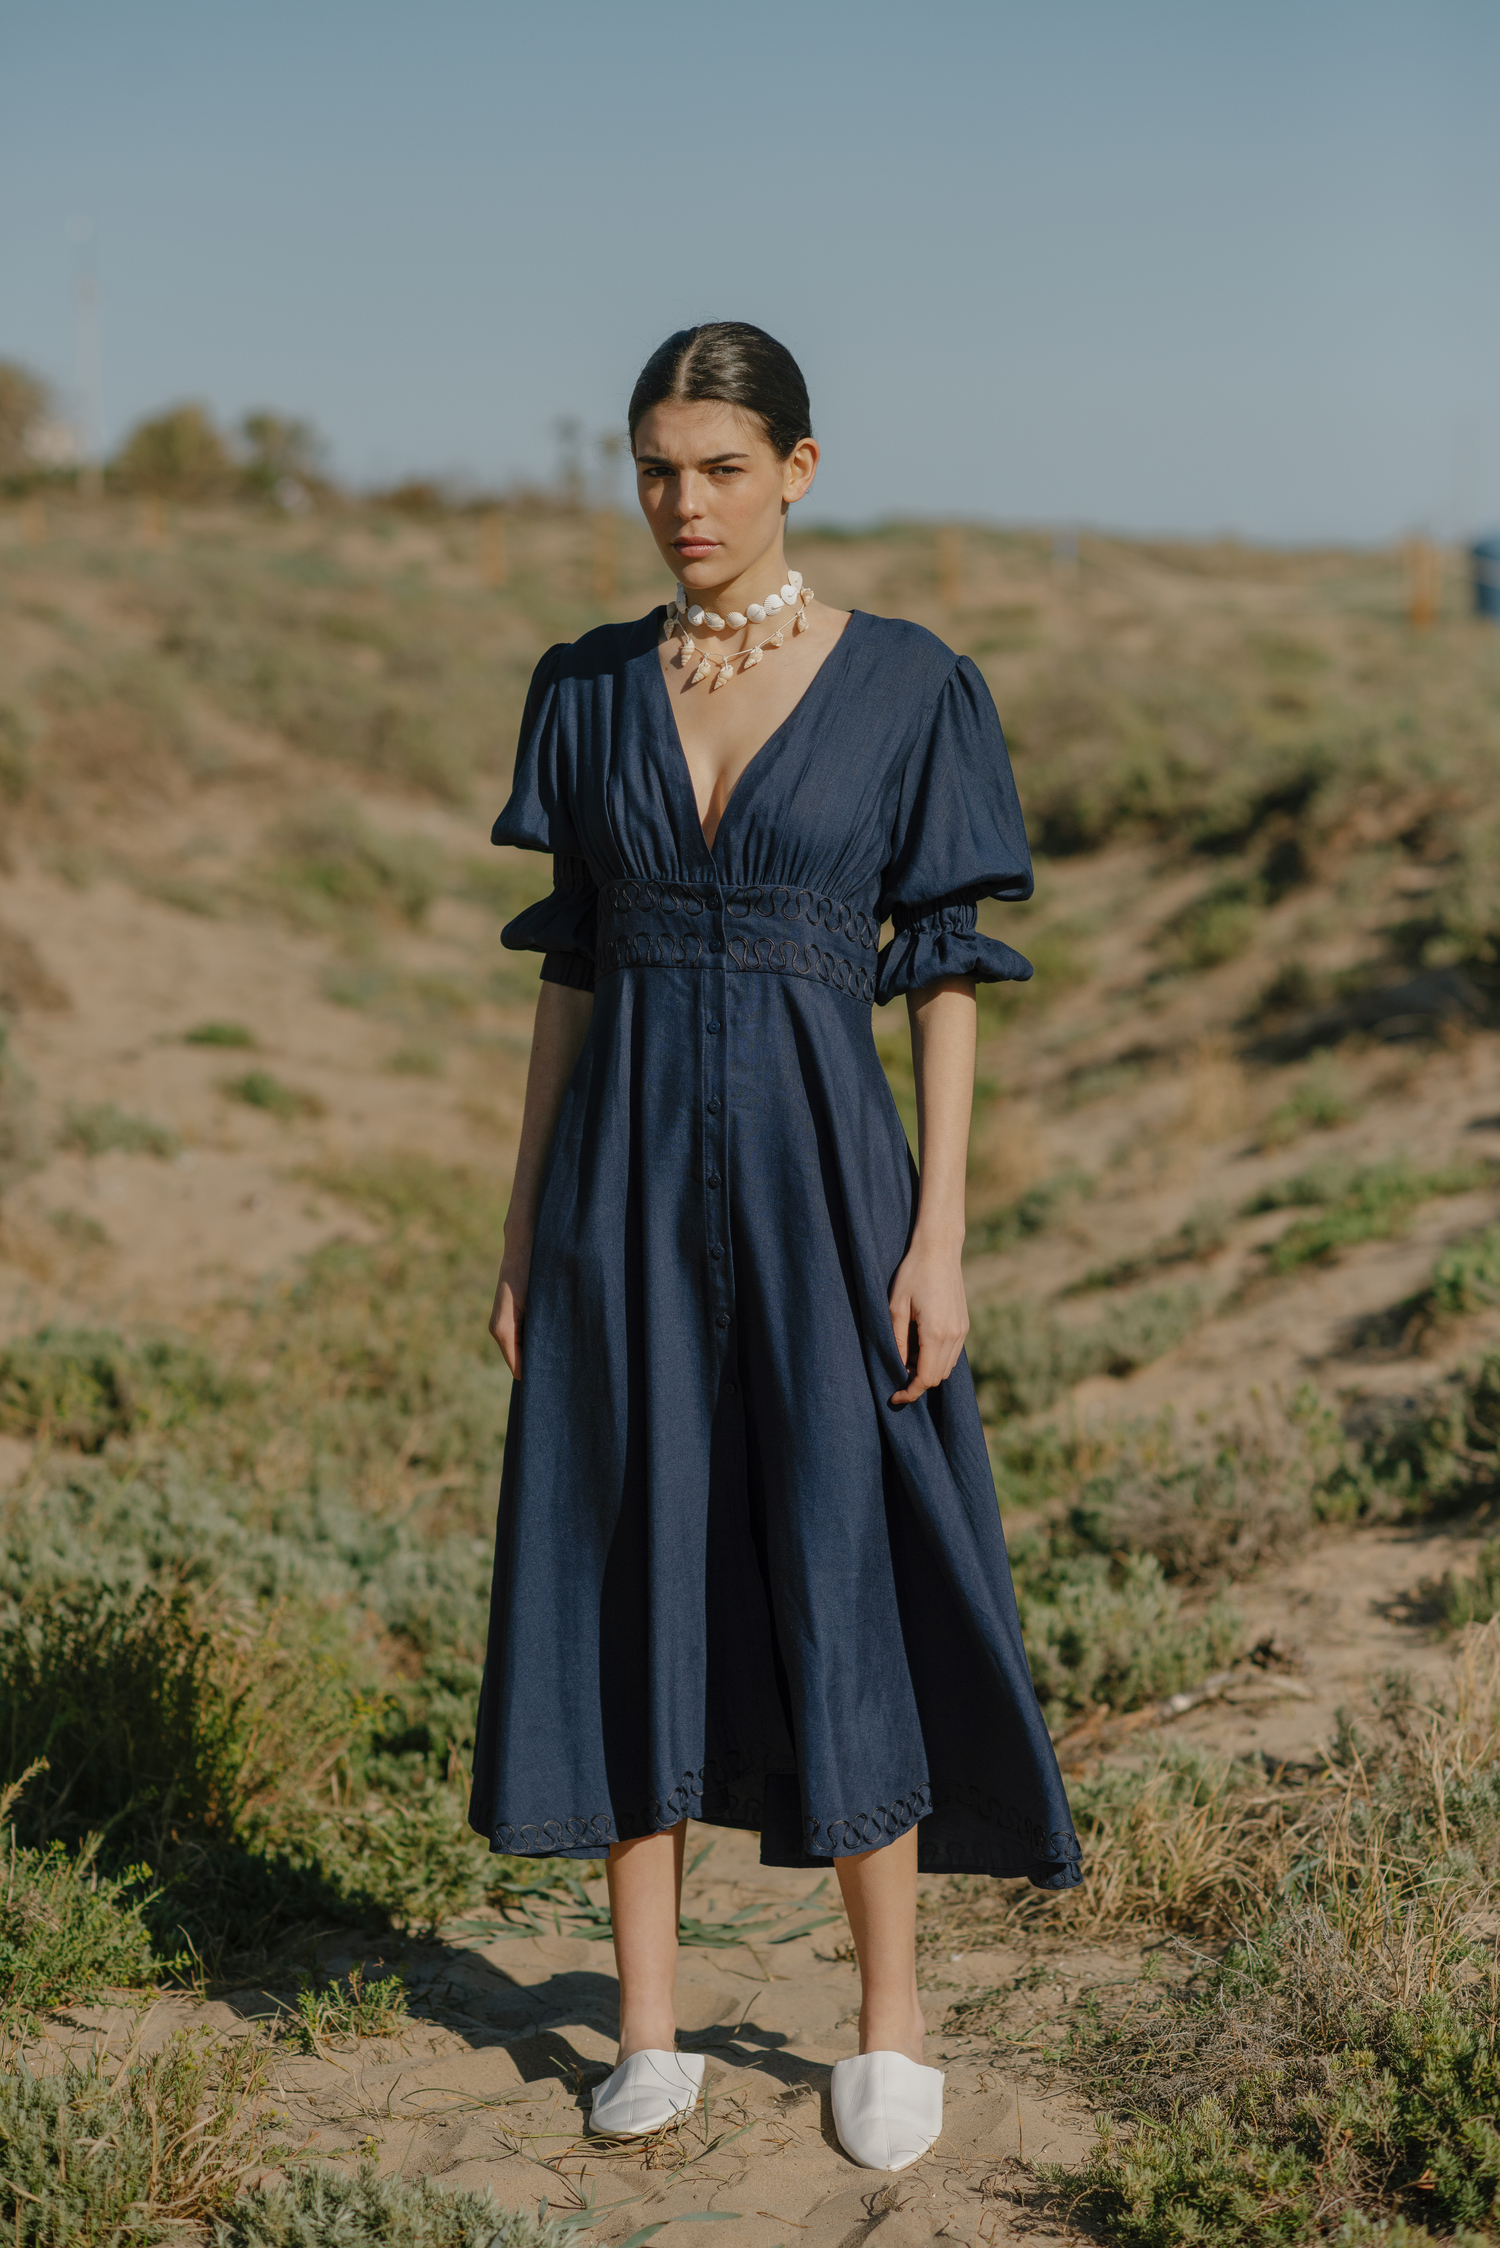 Azucar Dress - Navy by Berta Cabestany on curated-crowd.com